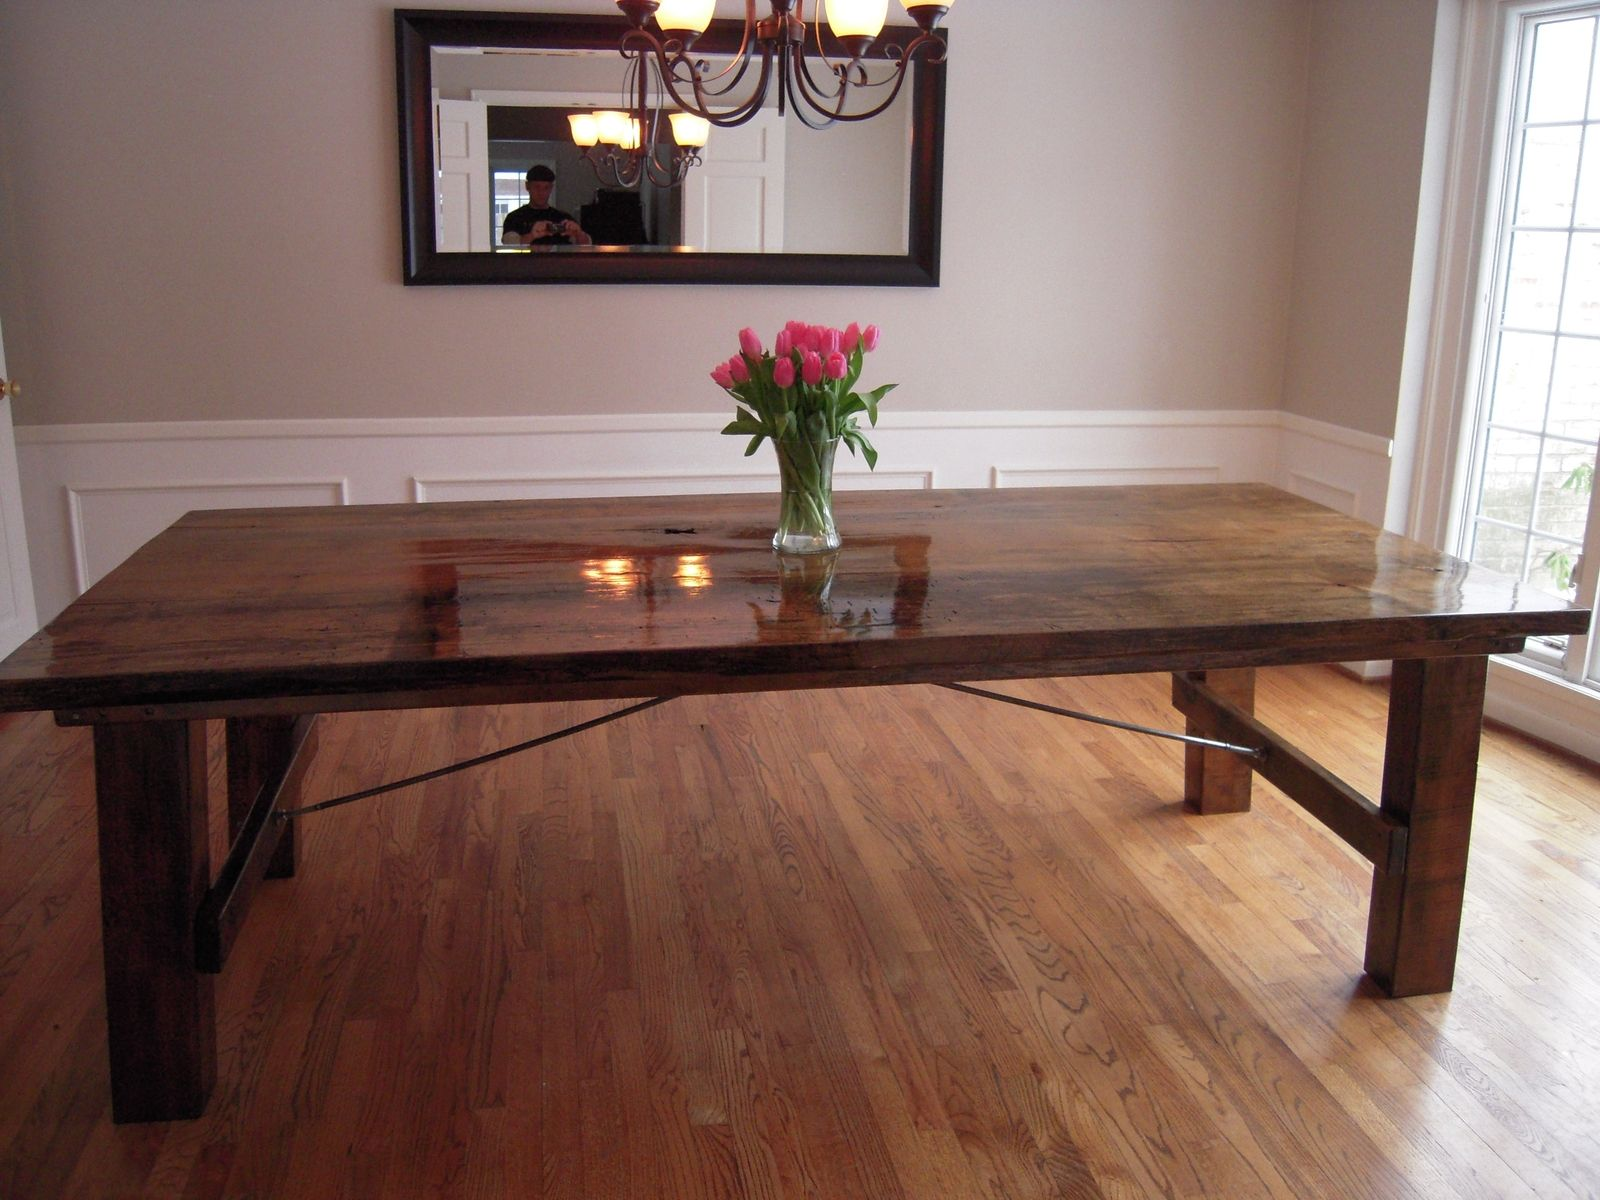 handmade spalted maple table by sanford customs. Black Bedroom Furniture Sets. Home Design Ideas